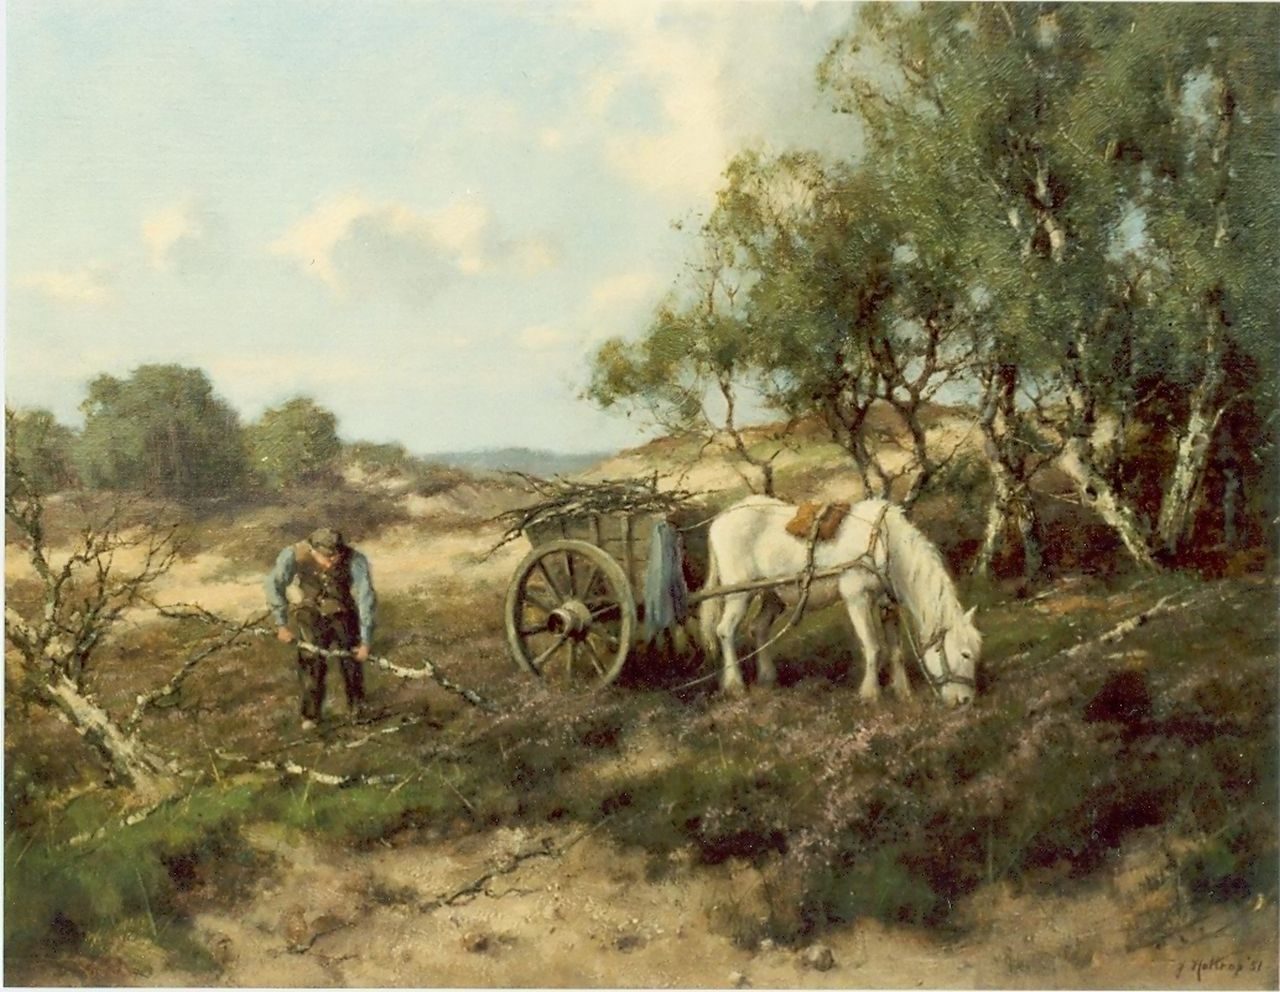 Holtrup J.  | Jan Holtrup, Woodgatherer in landscape, oil on canvas 40.0 x 50.0 cm, signed l.r. and executed '51